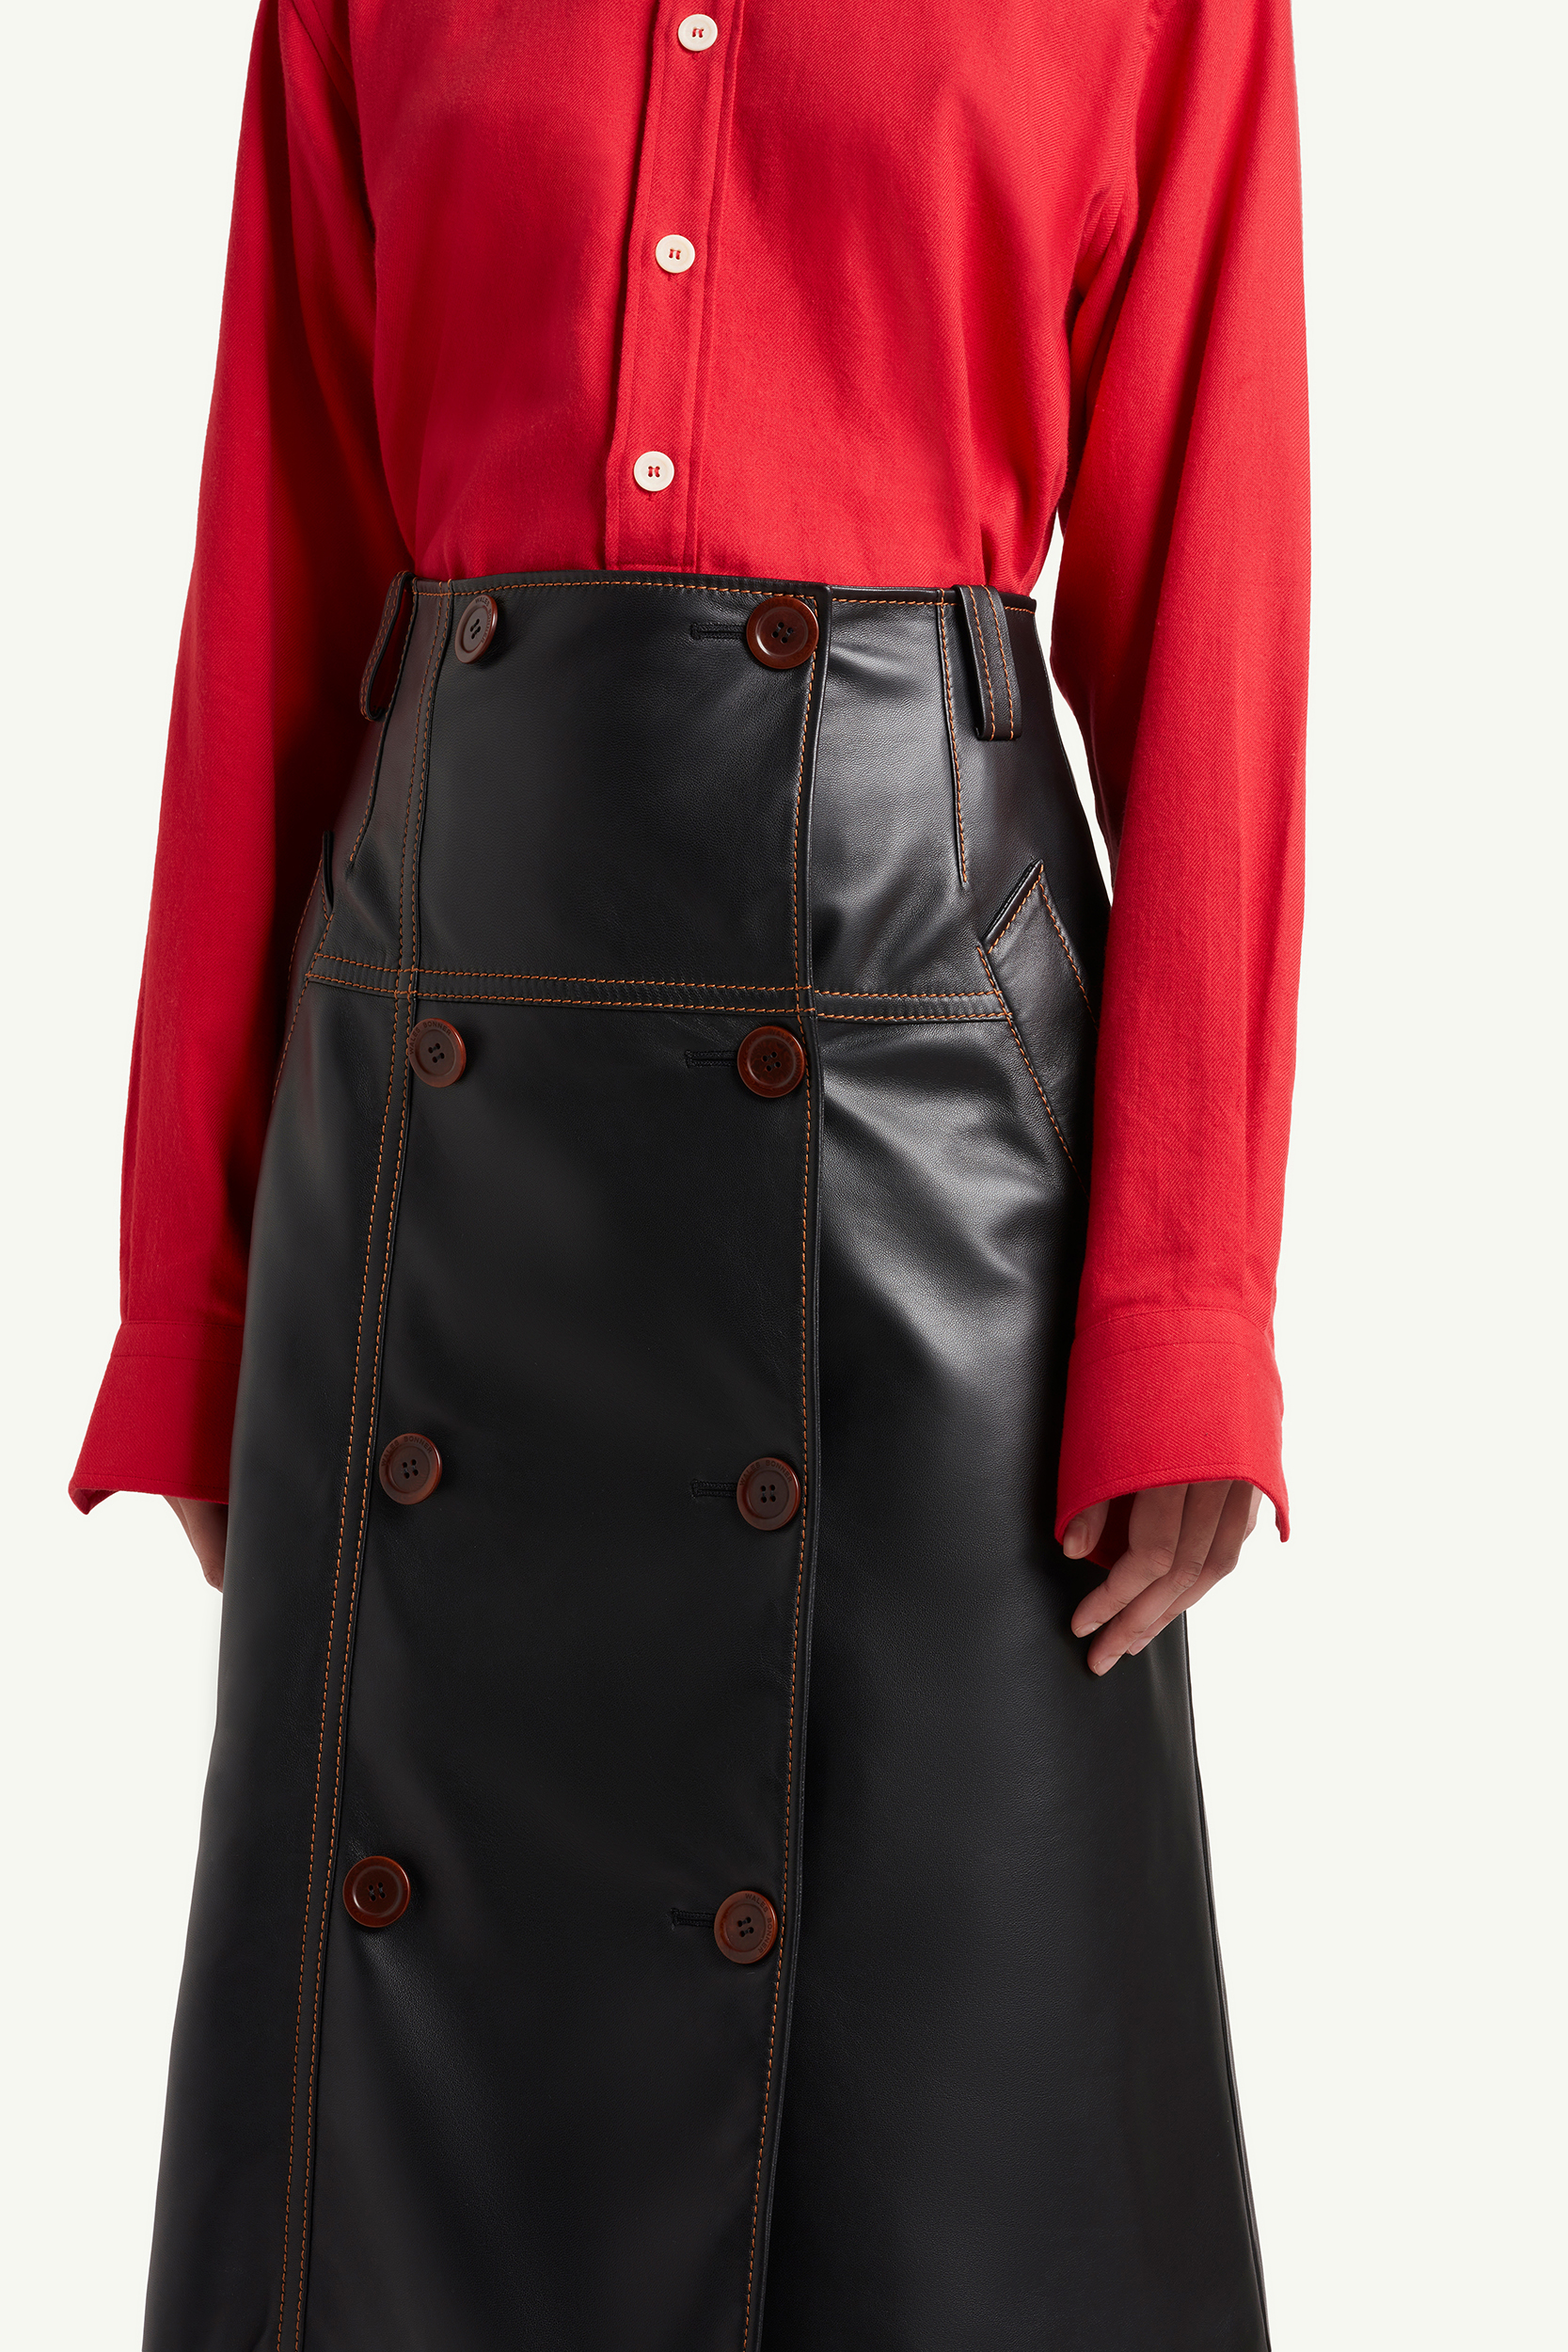 Detail shot of the Wales Bonner leather skirt with Red Shirt on womenswear model